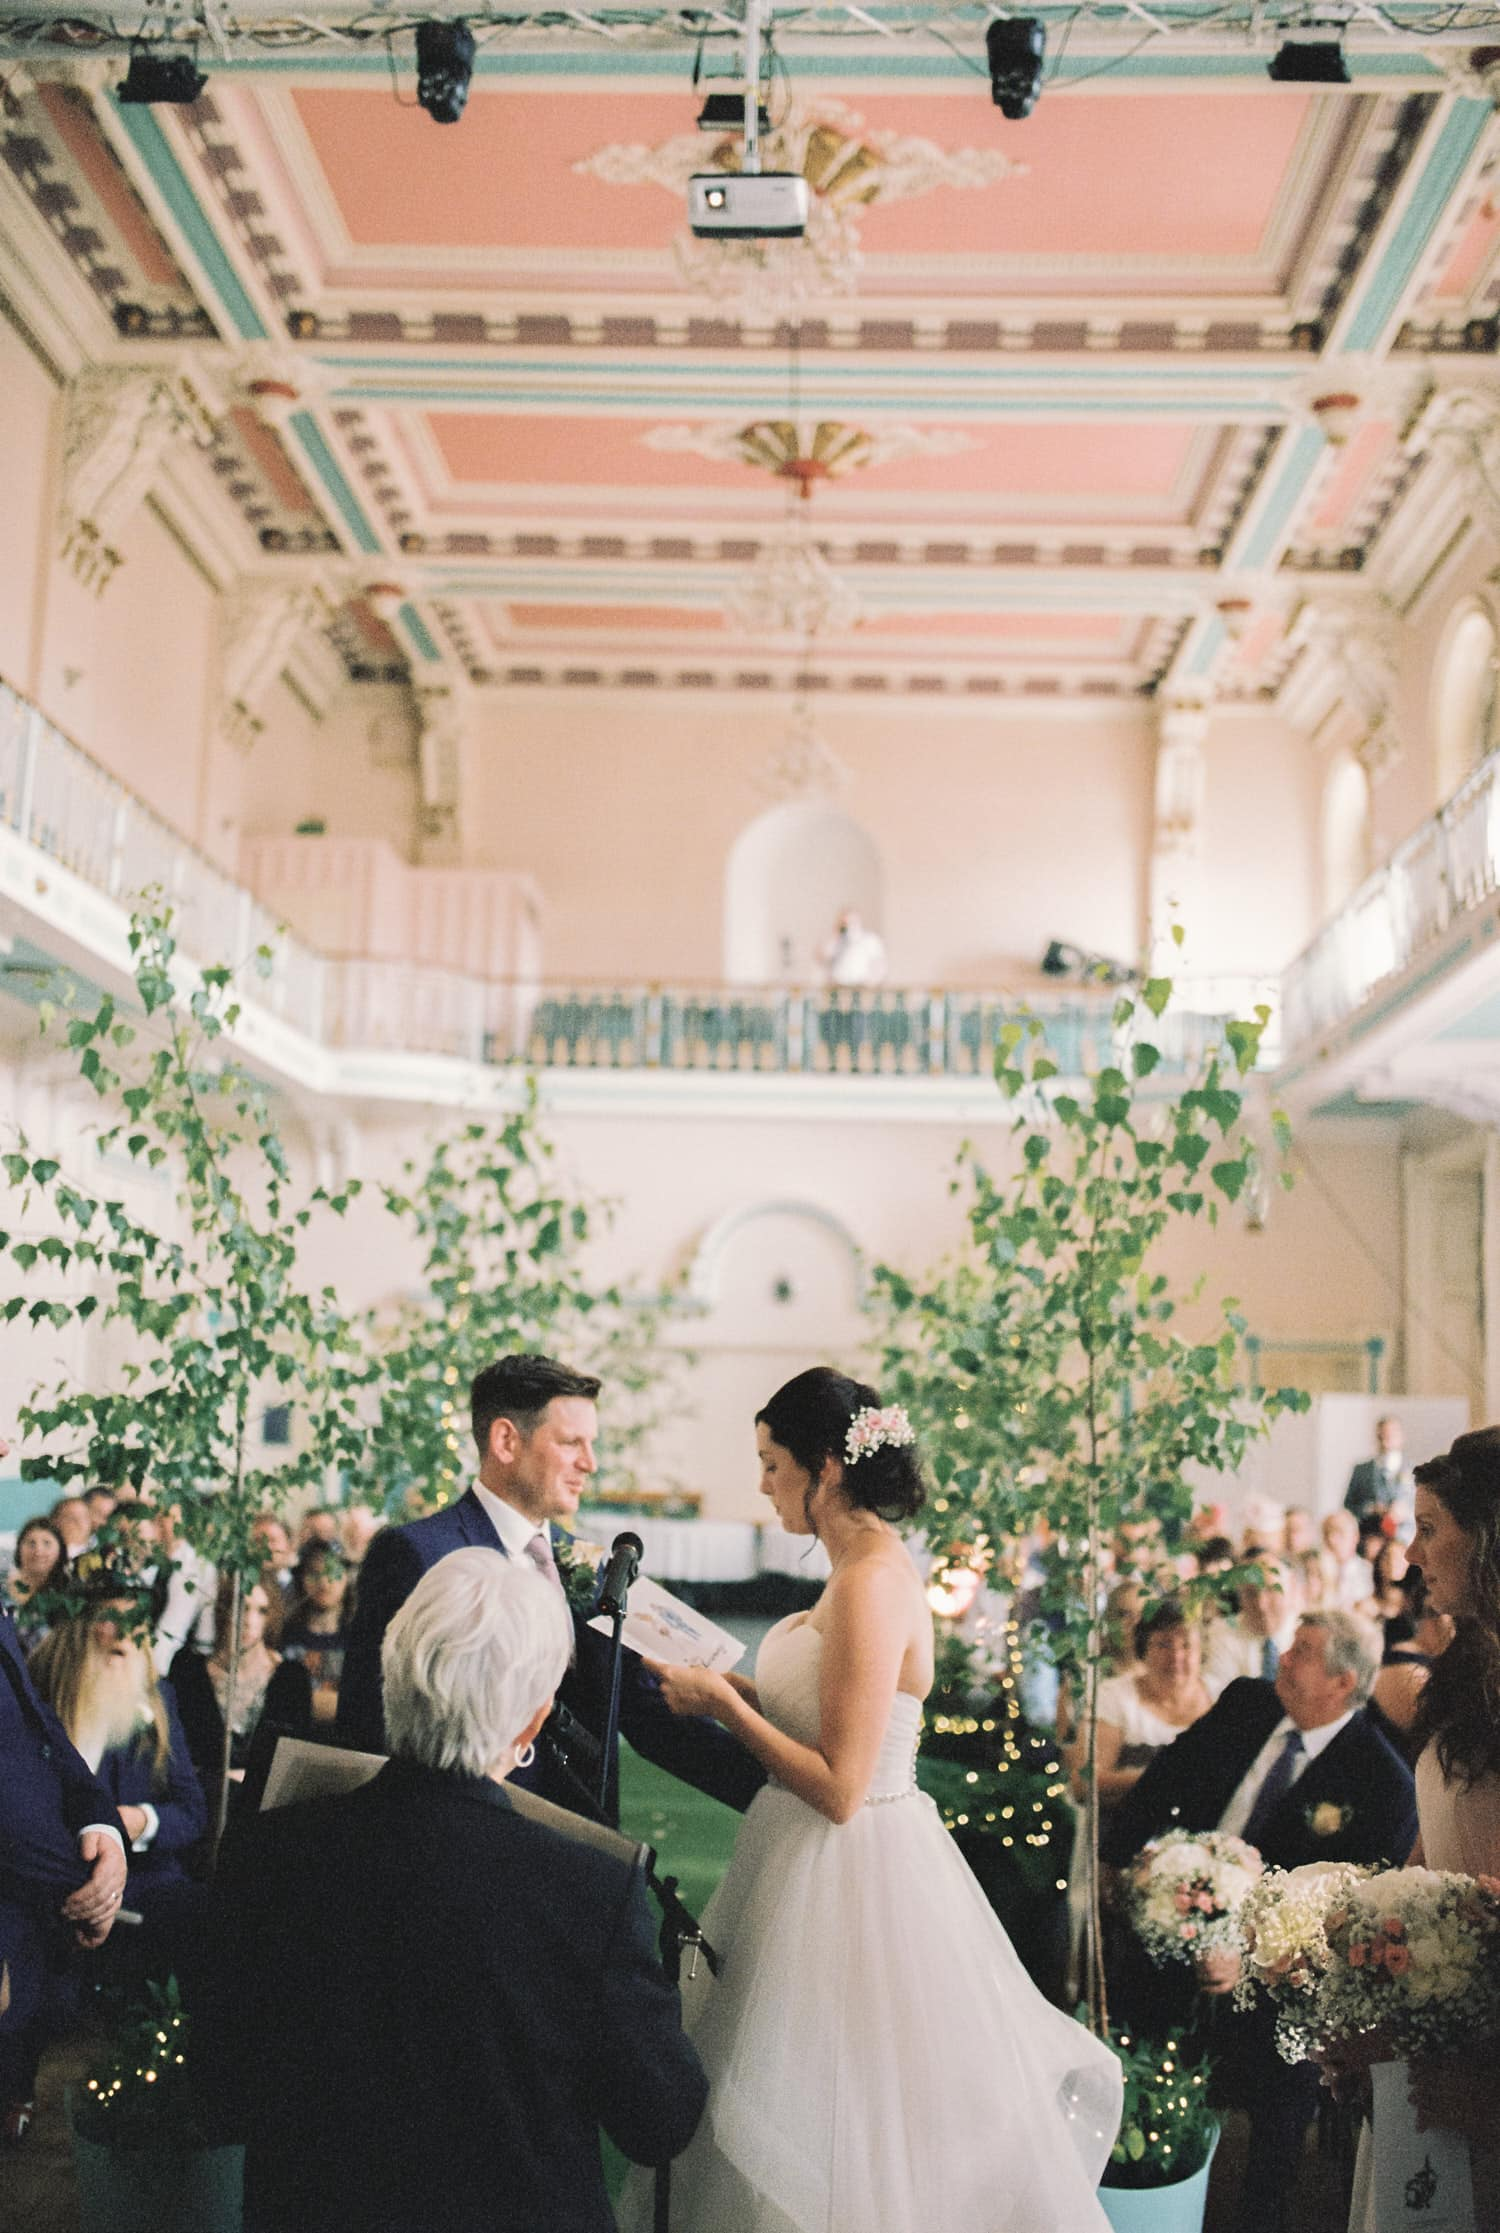 A couple getting married at Louth Town Hall, Lincolnshire